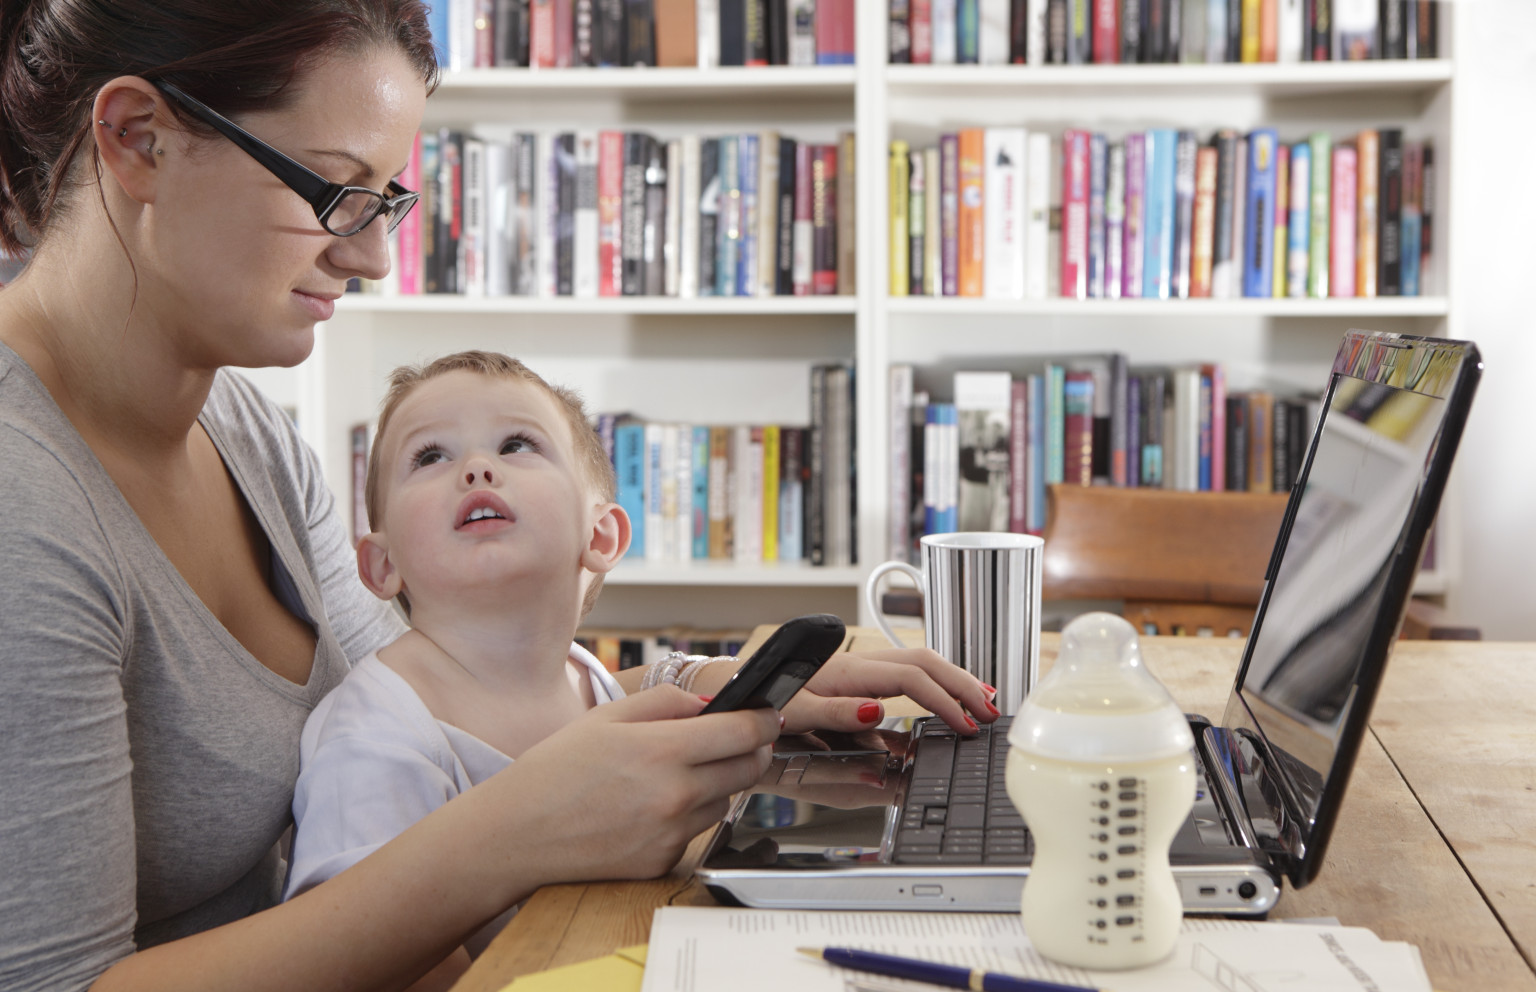 children of working mothers vs stay at In the case of middle class or wealthy families when the mother is working full-time, particularly in the early months of a child's life, there appears to be a mildly increased risk for later behavioral problems and subtle cognitive impact relative to mothers who aren't working or are working part-time.